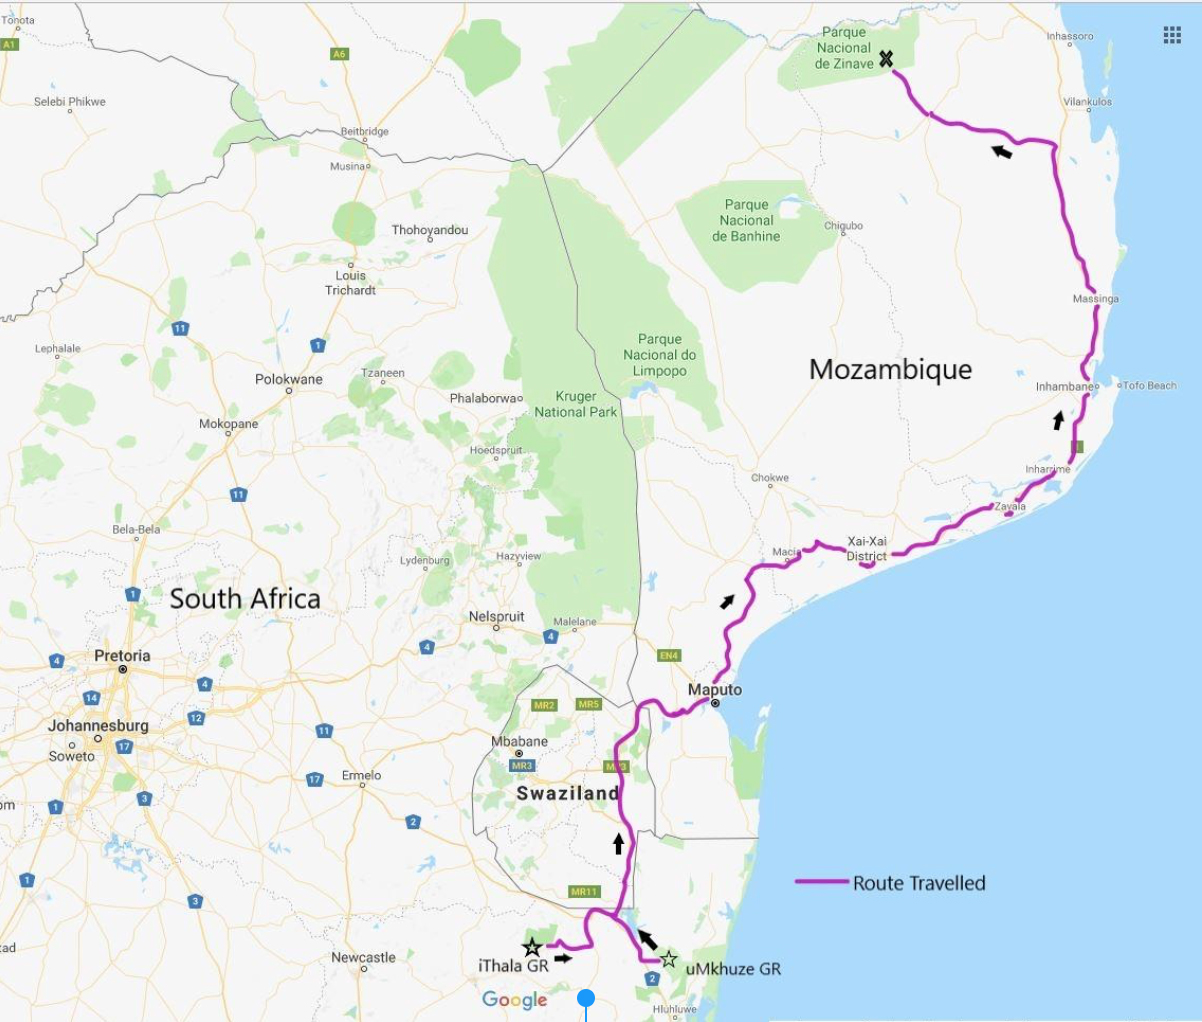 The 777 mile (250 km), 3 country-wide, route travelled by the 53 elephants.